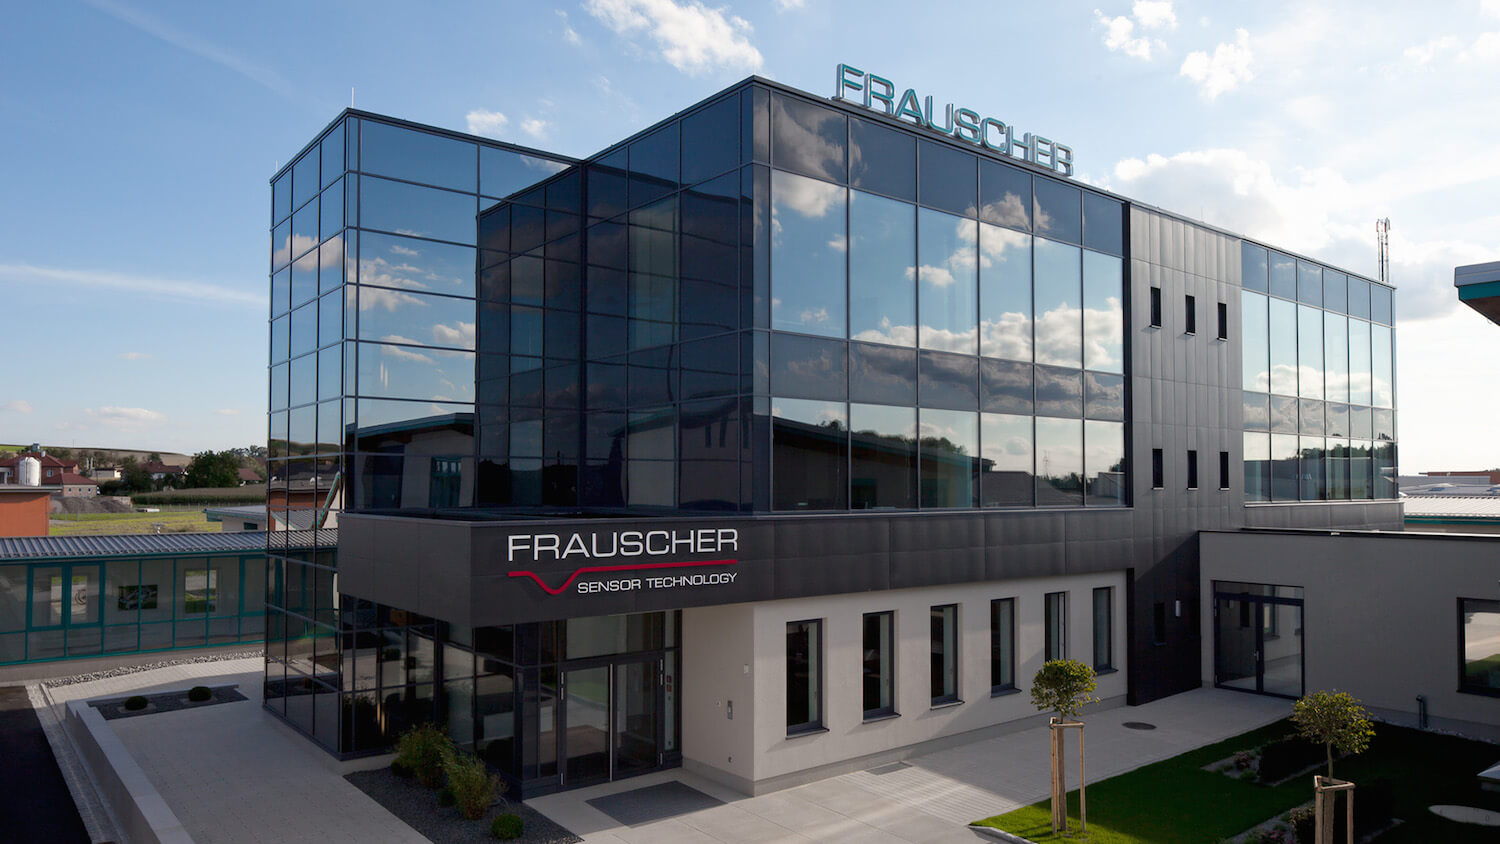 Frauscher's main campus in Austria